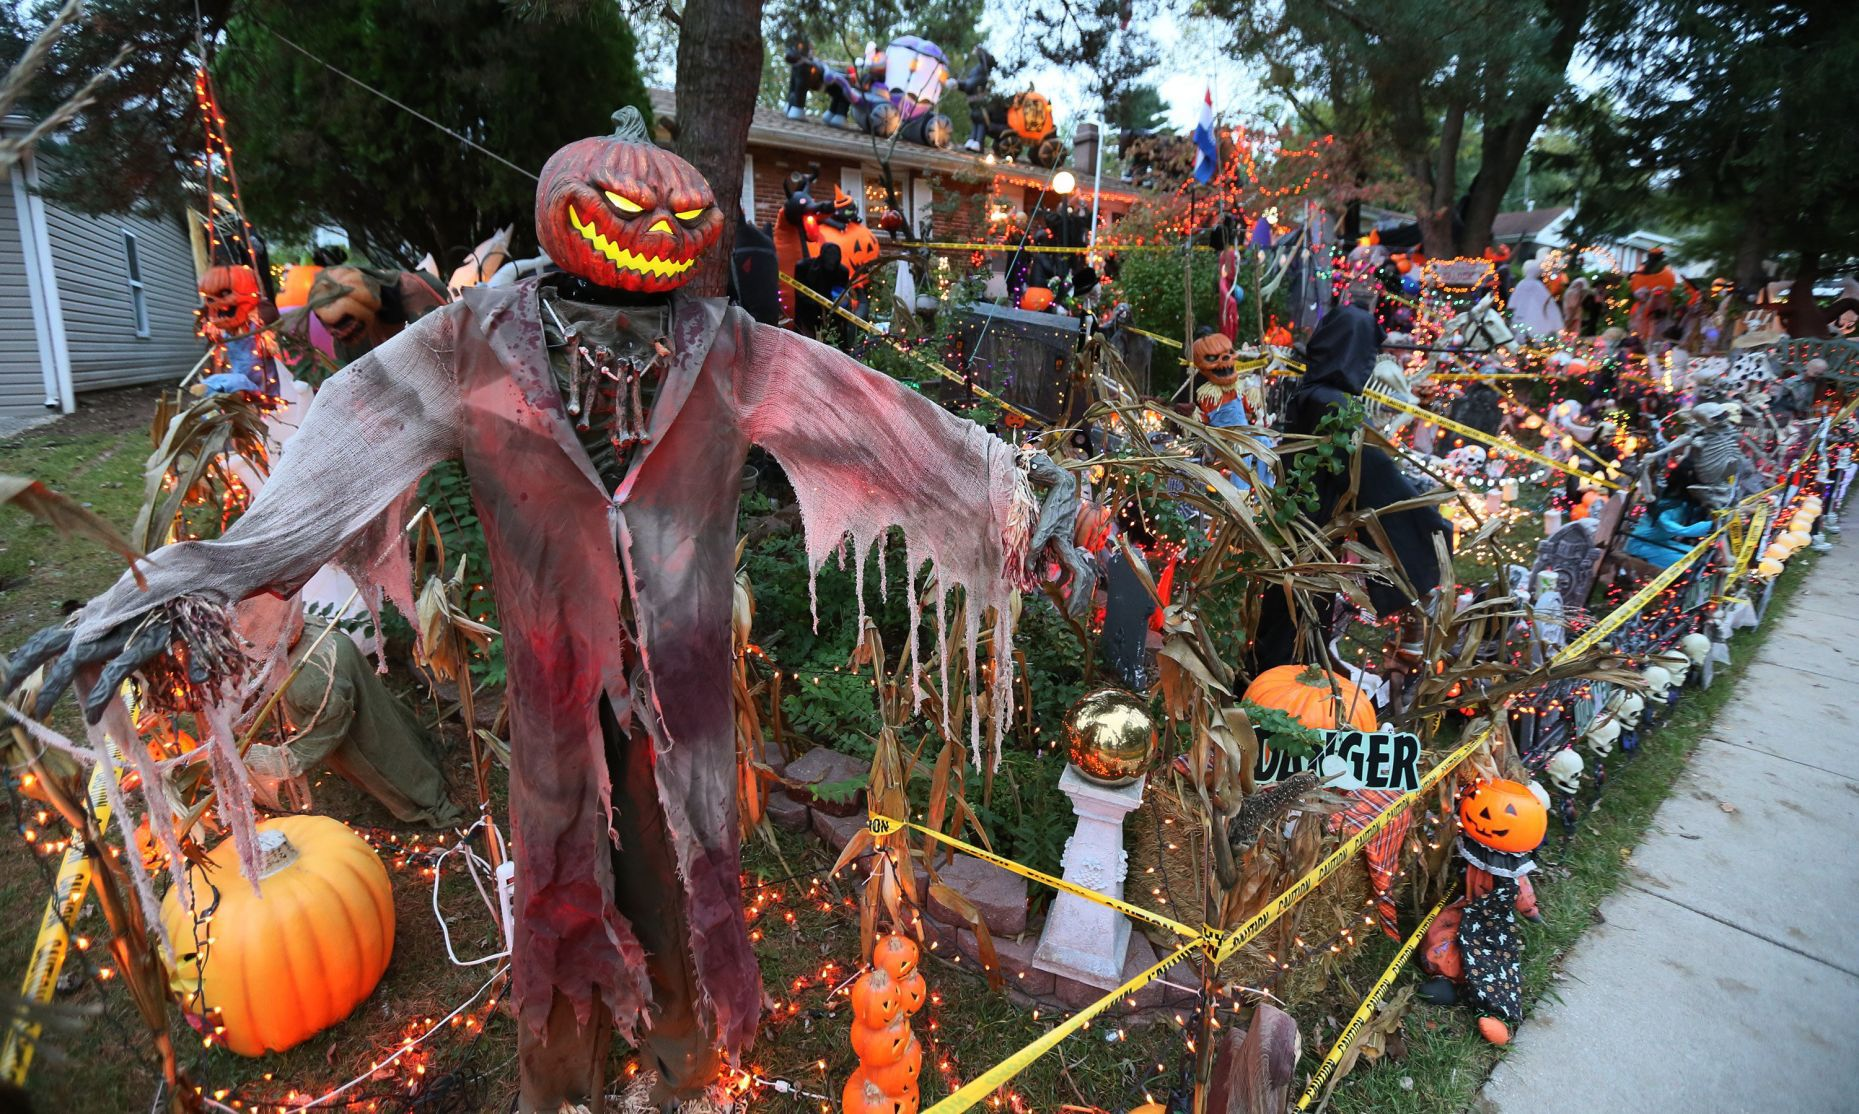 Extreme Halloween Decorations Earn St Charles Man Bigger